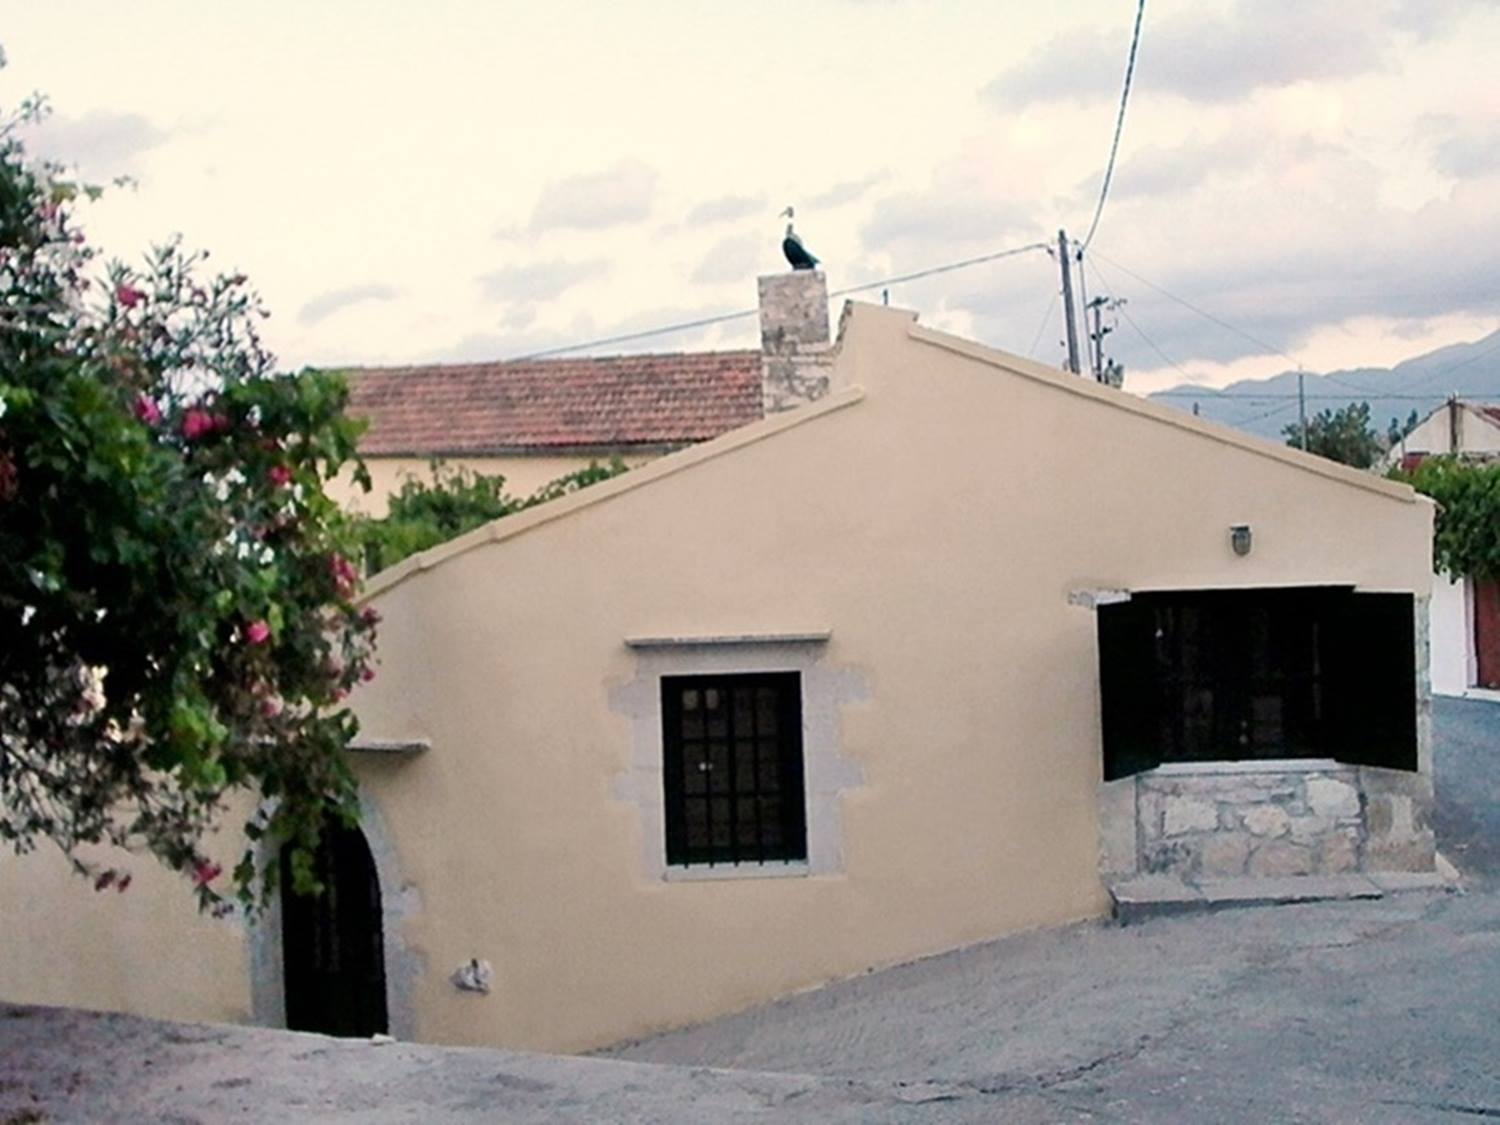 House dream 2 village near the beach holiday rentals in for Dream home rentals